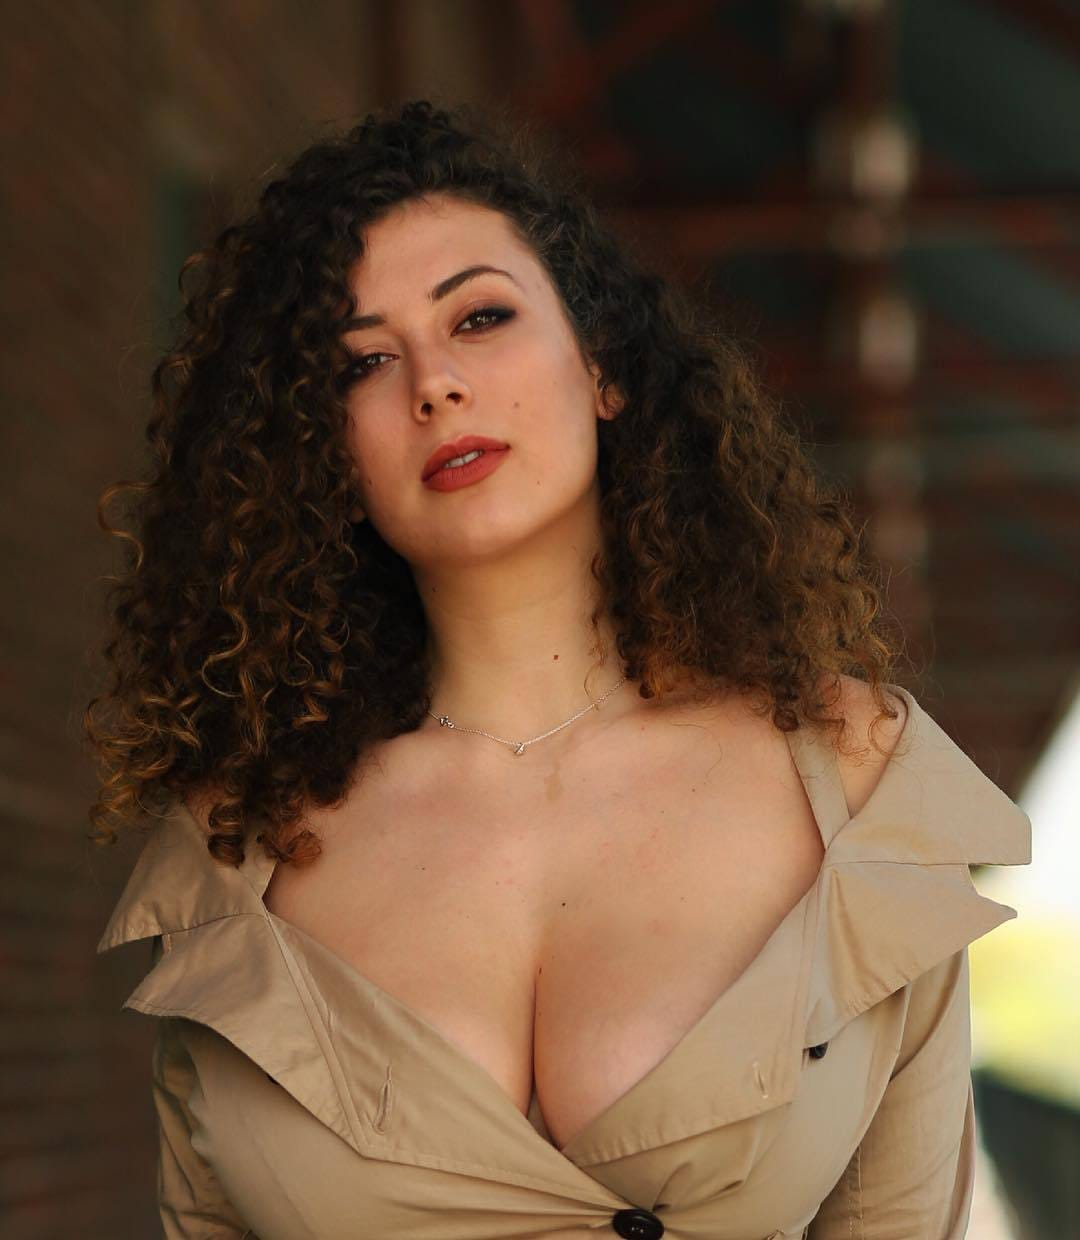 Images Leila Lowfire nude (59 photo), Pussy, Leaked, Feet, braless 2015